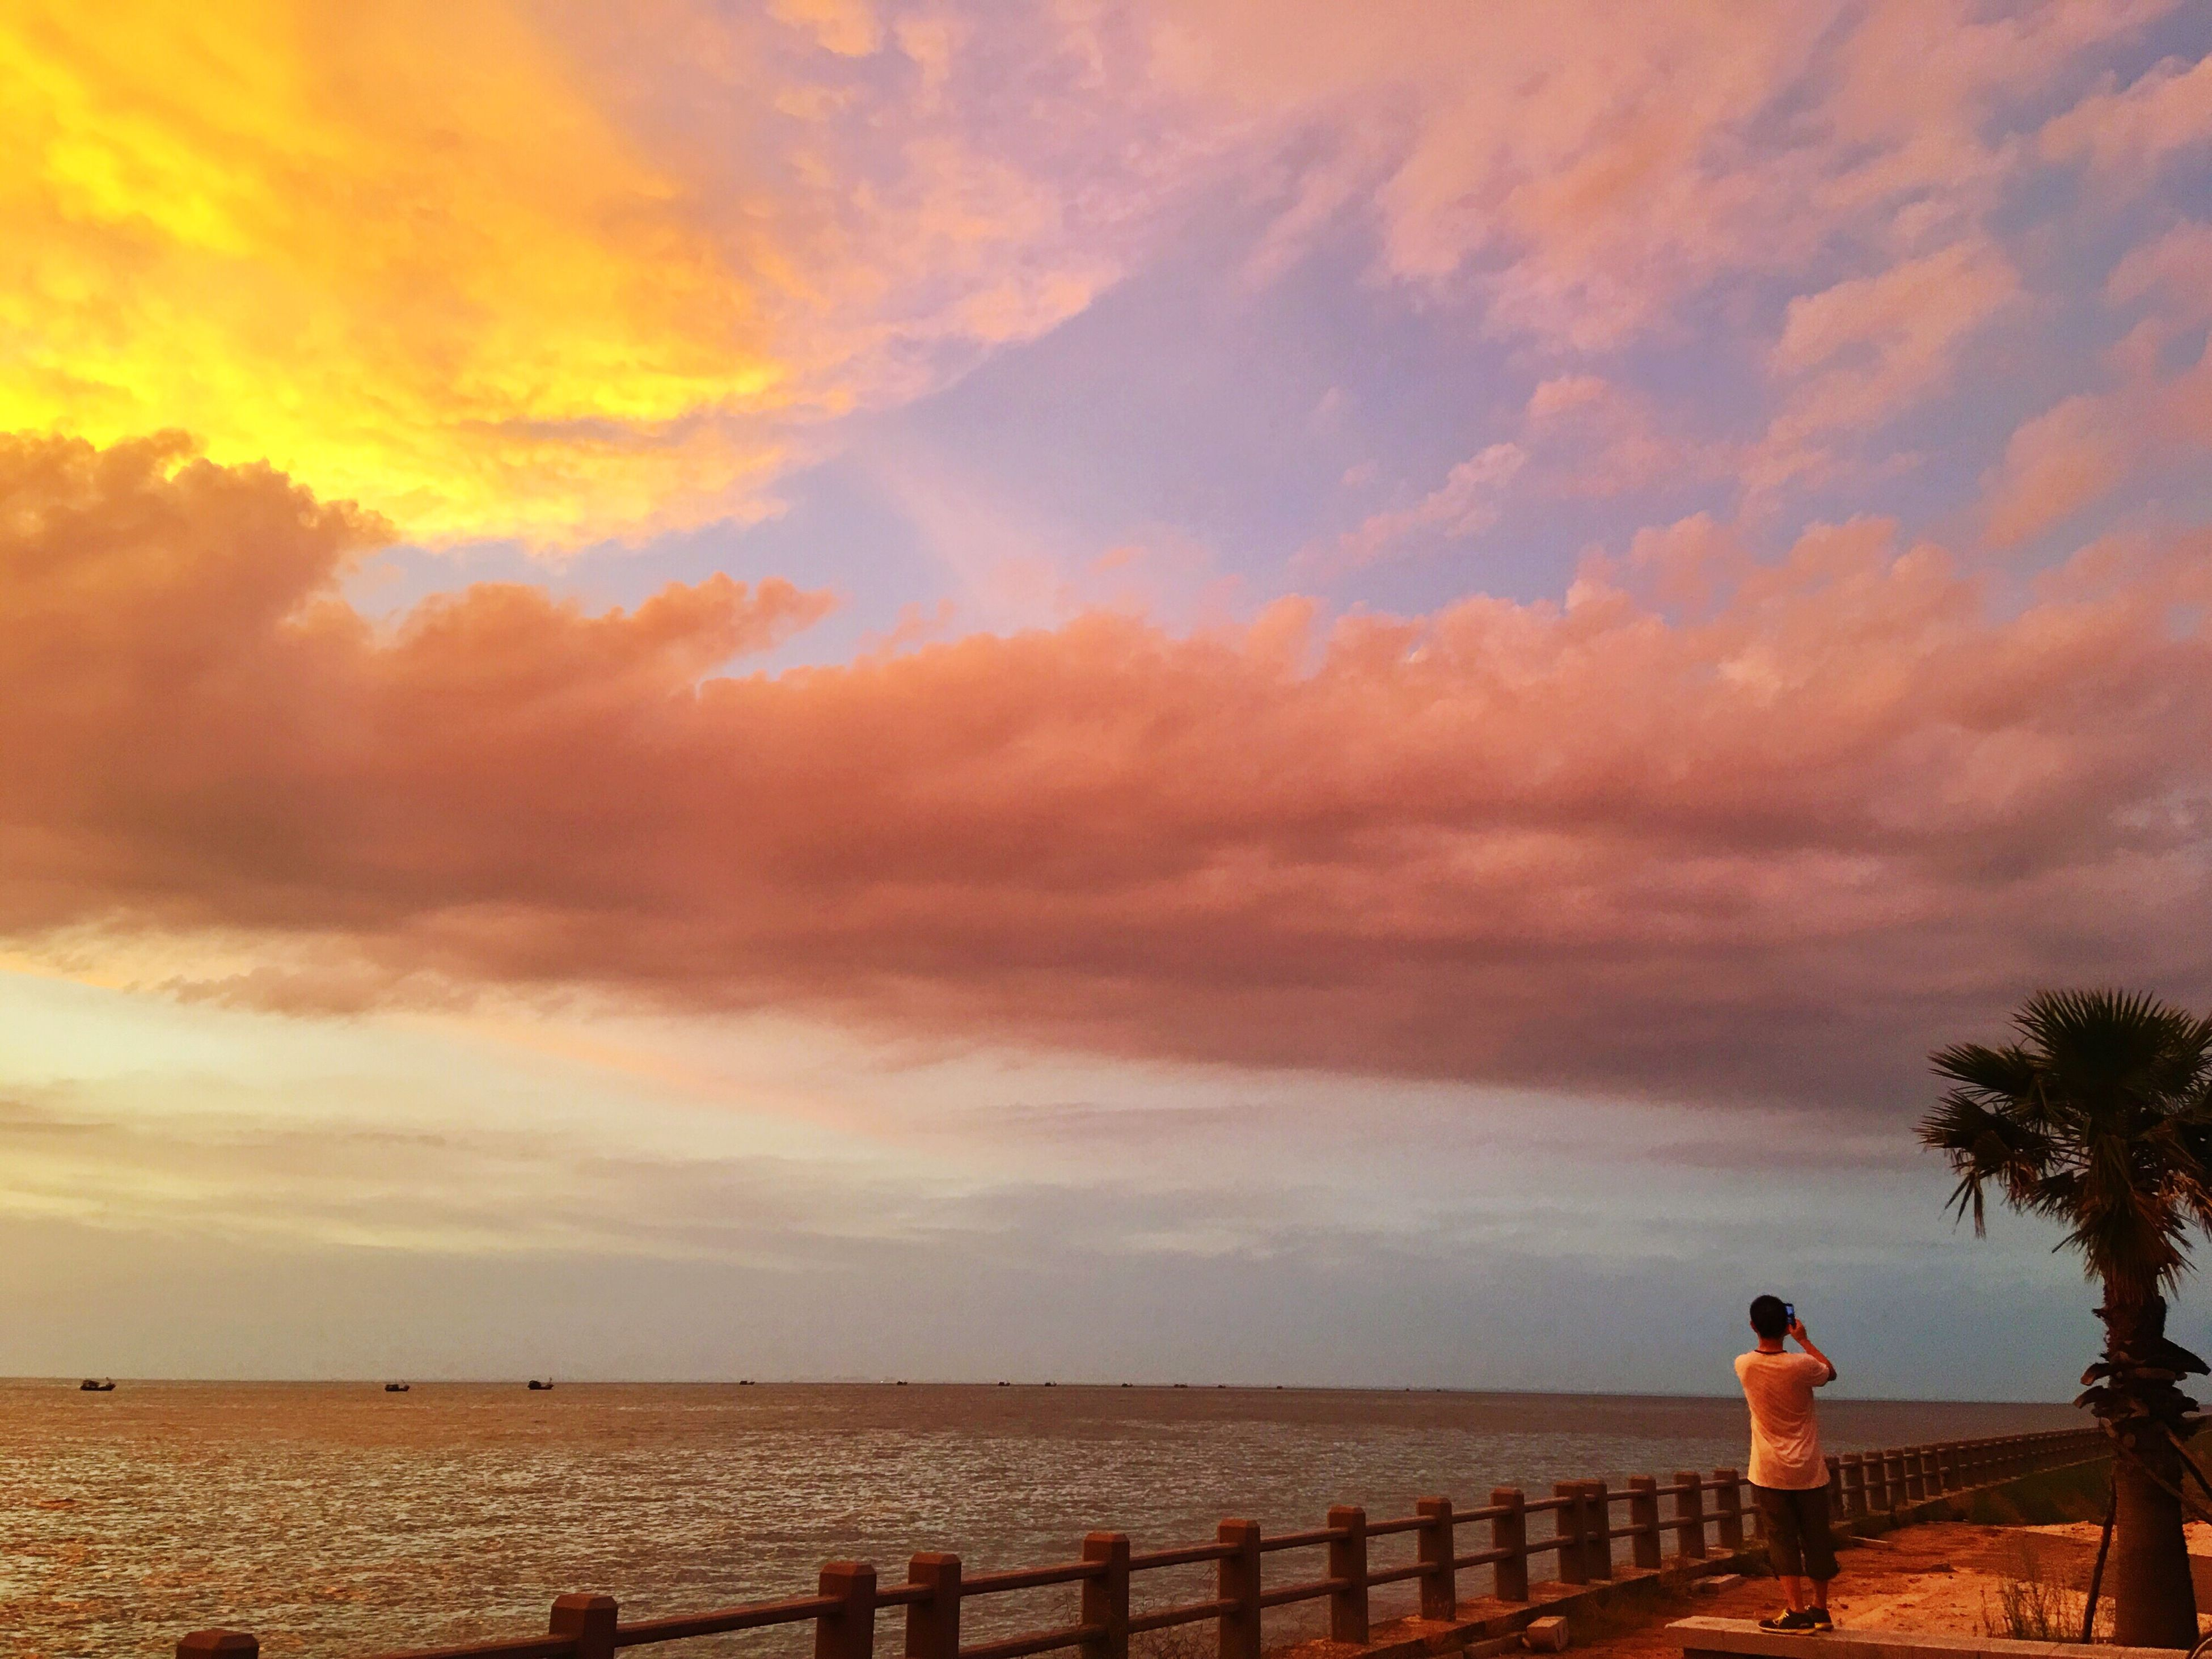 sea, sky, horizon over water, beach, water, leisure activity, lifestyles, cloud - sky, scenics, tranquility, beauty in nature, sunset, tranquil scene, shore, nature, railing, person, idyllic